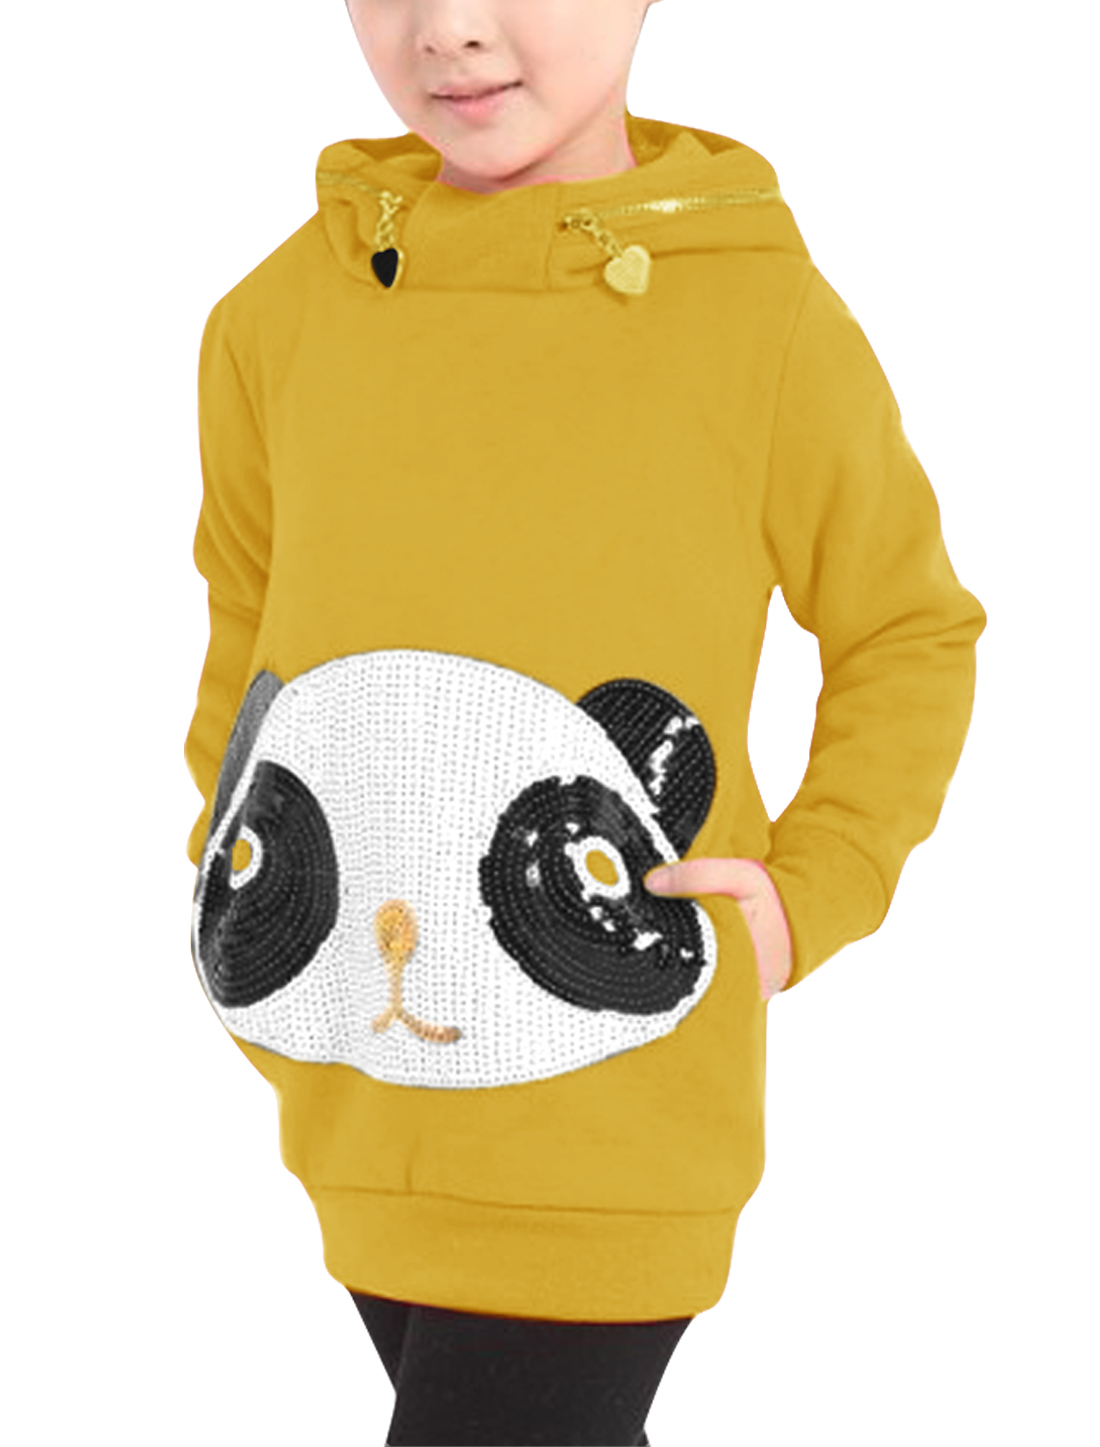 Girls Cartoon Panda Decor Hoodies Yellow 5